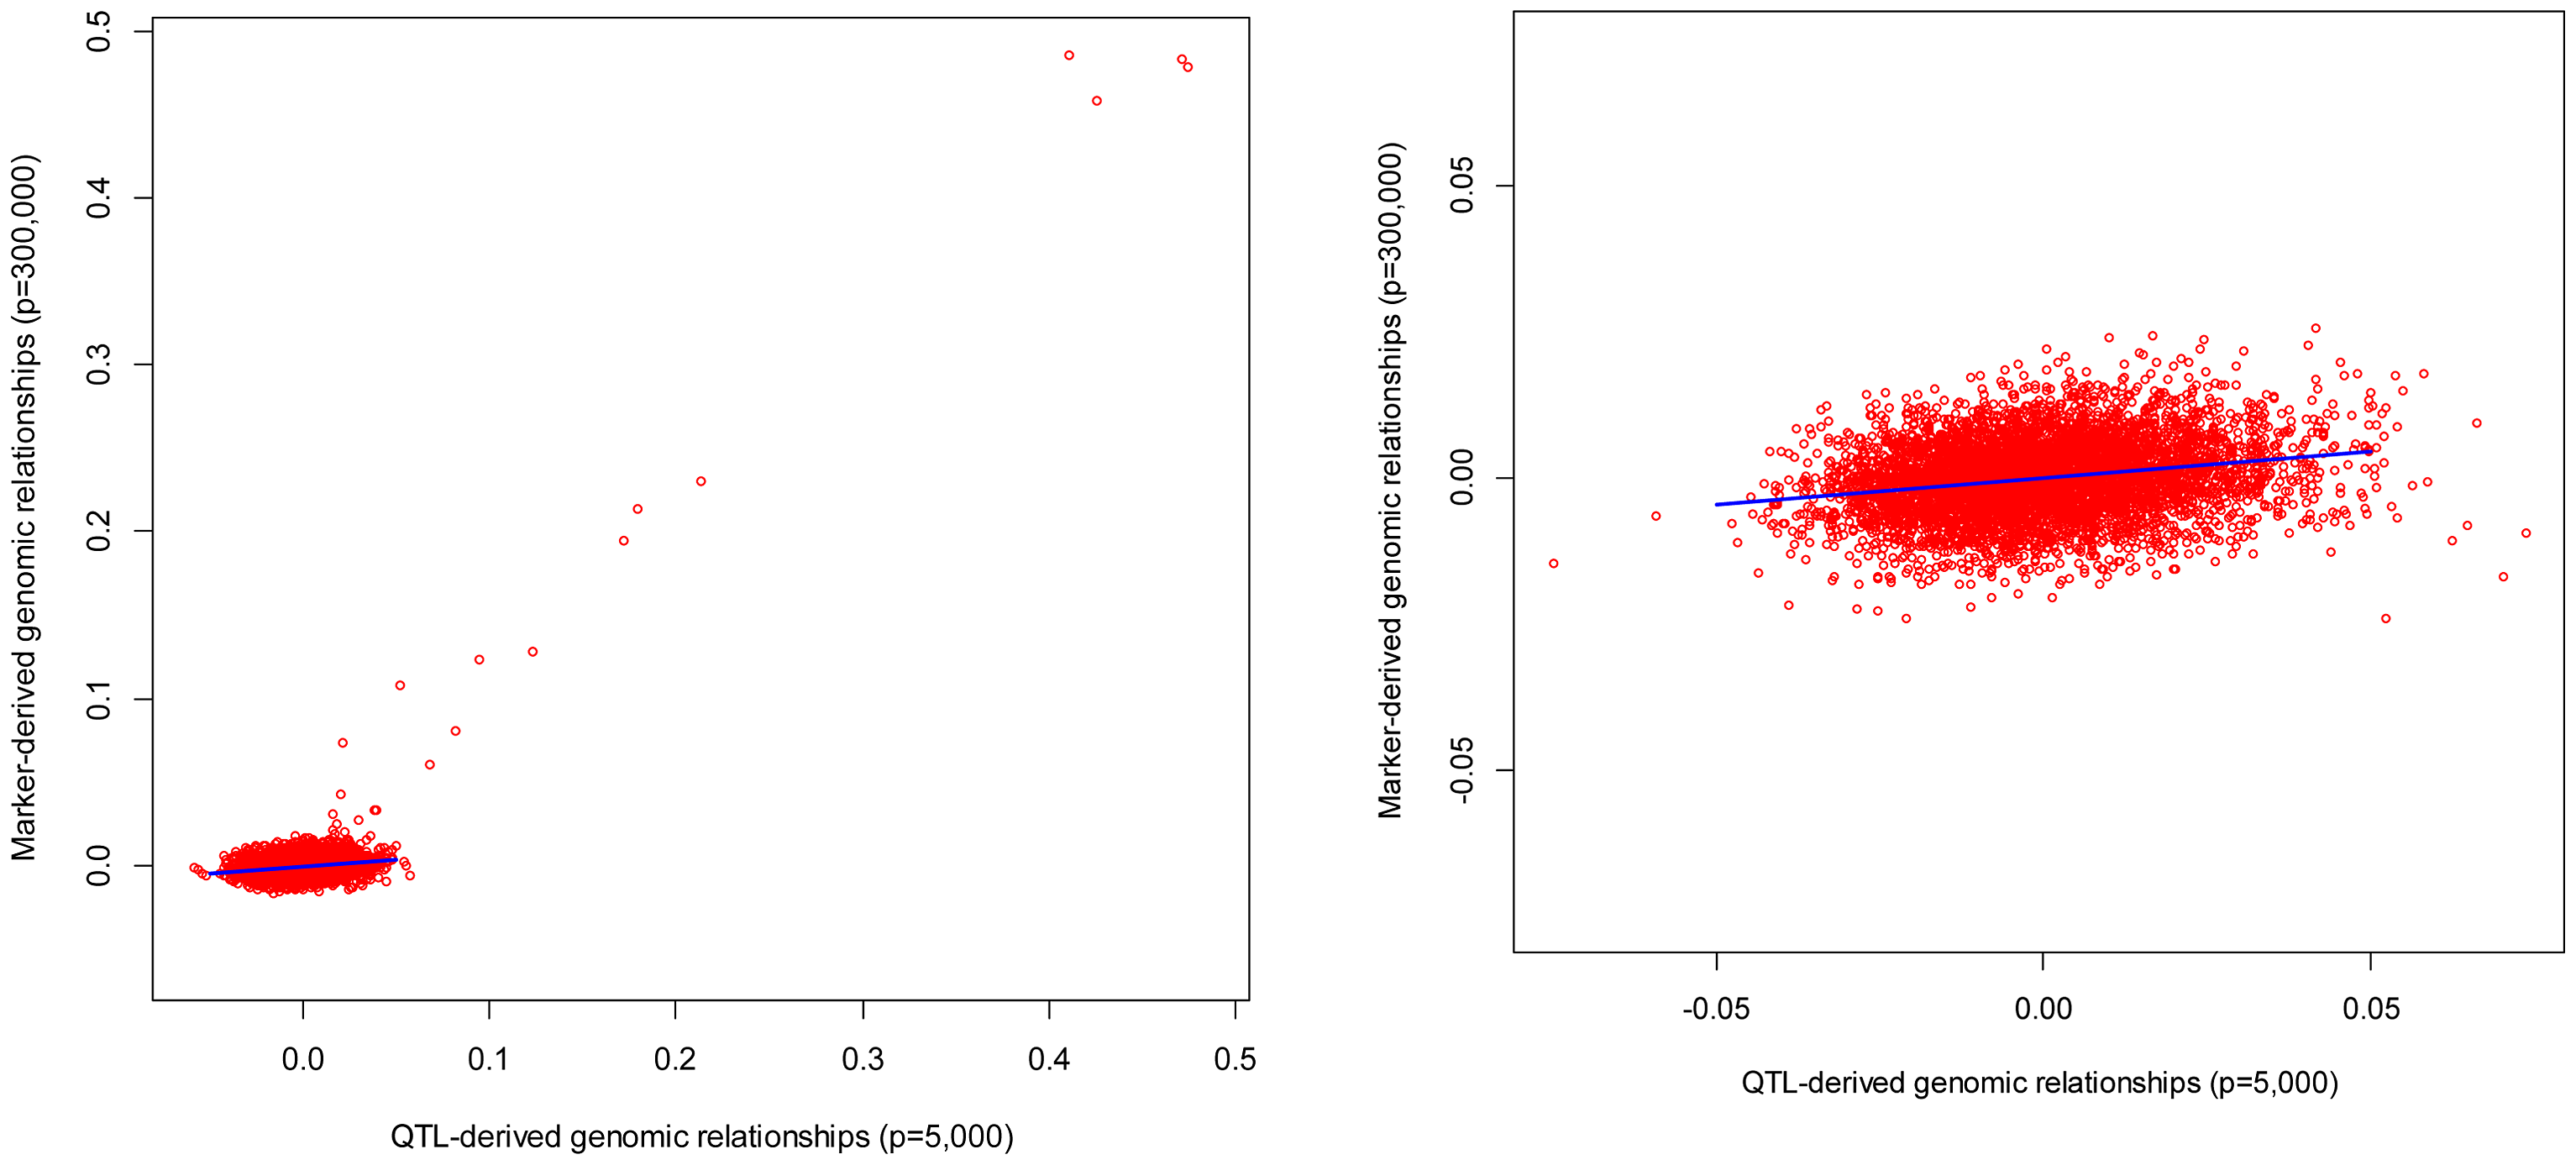 Genomic relationships realized at markers (vertical axis) versus those realized at causal loci (horizontal axis).